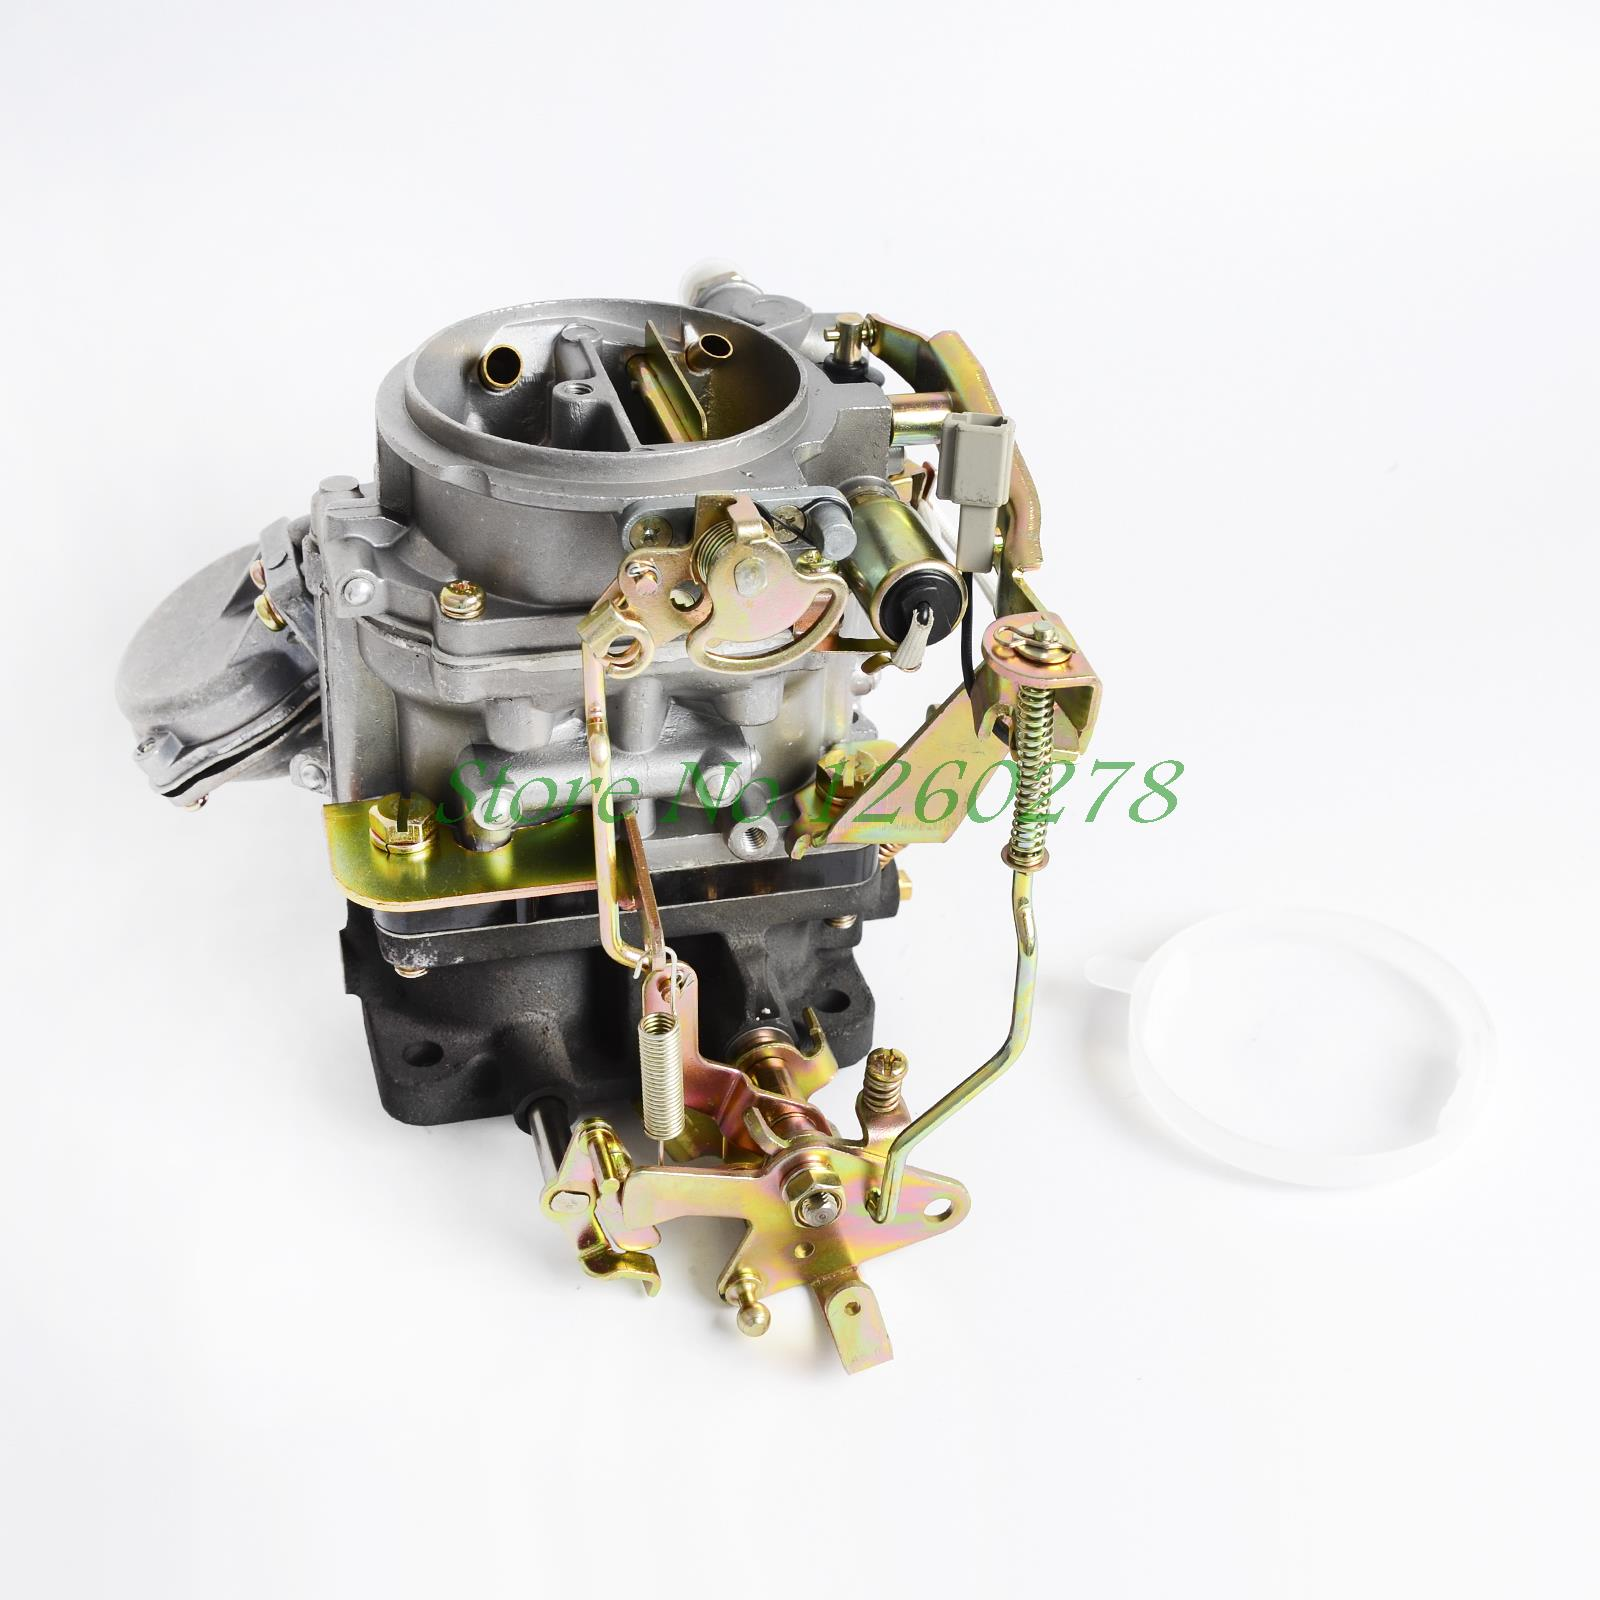 New Carburetor Fit for TOYOTA 2F LAND CRUISER 1975 1987 Carby 21100 61012